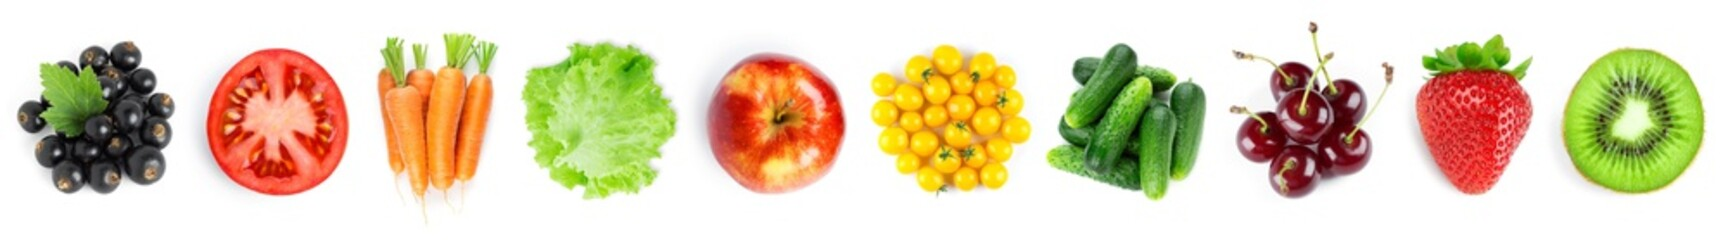 Foto op Plexiglas Keuken Collection of fruits and vegetables on white background. Top view